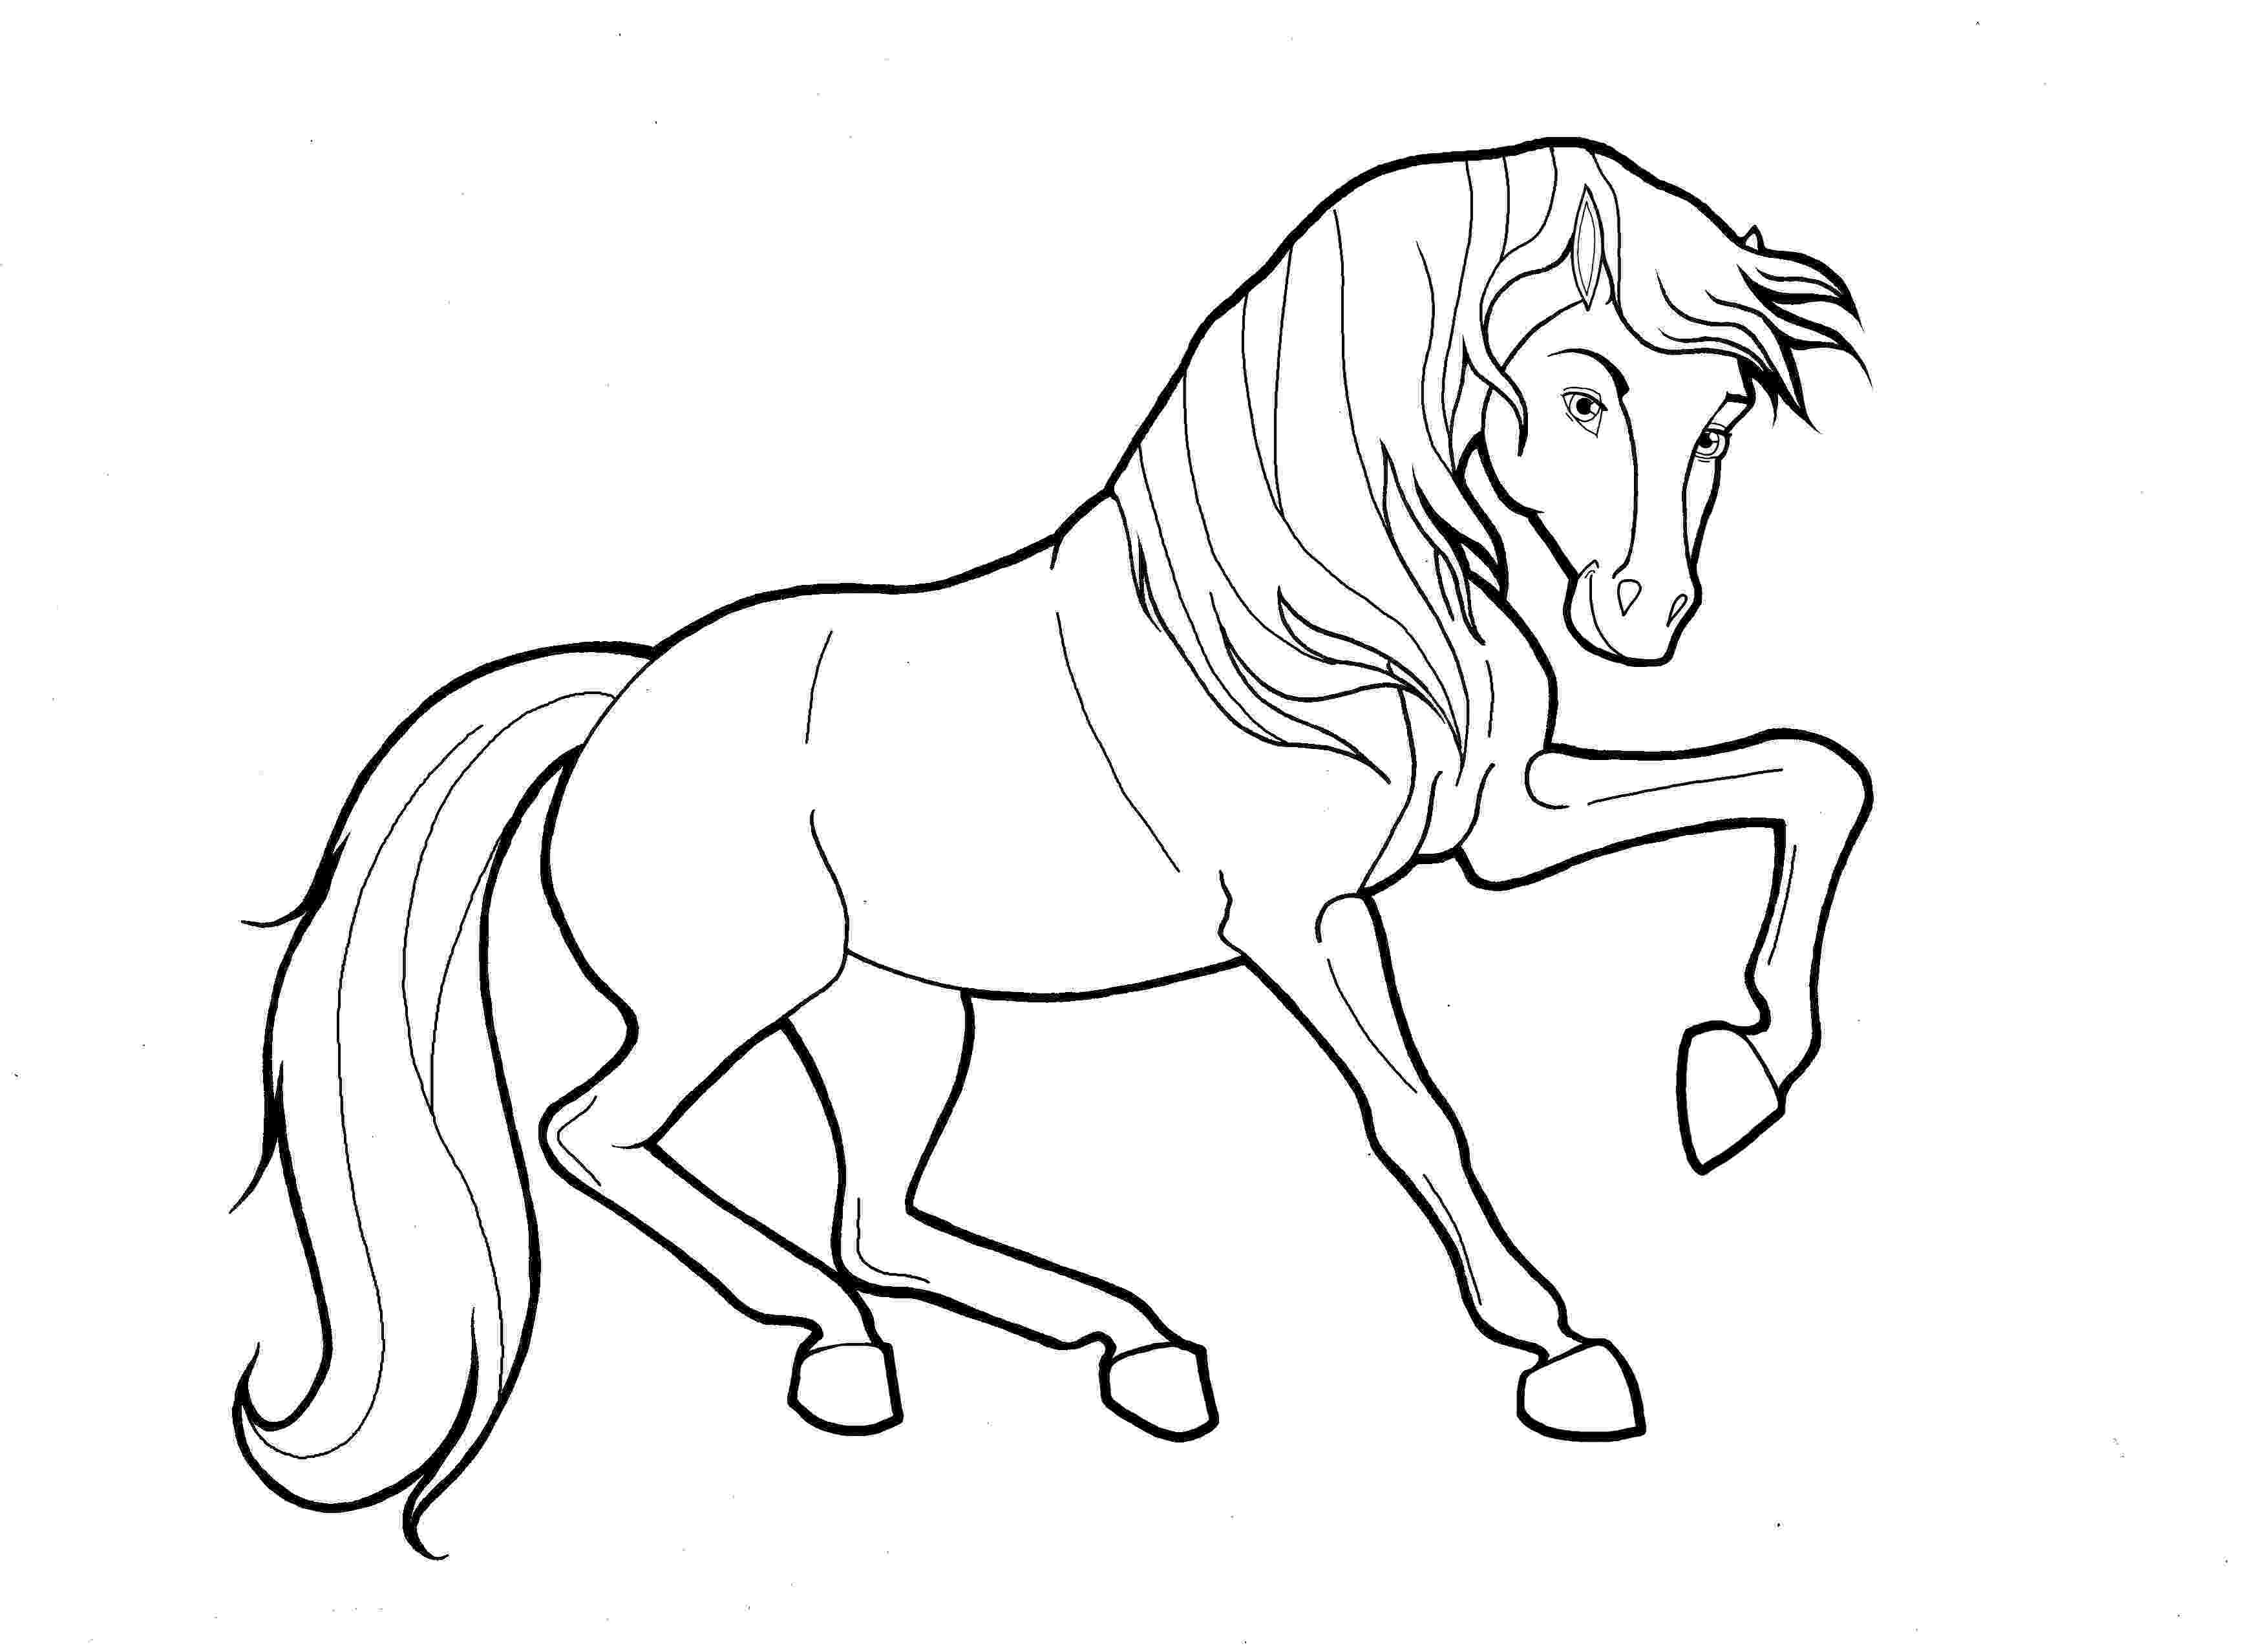 free coloring pictures of horses horse to print and color pages 2 color horse coloring pictures horses coloring of free